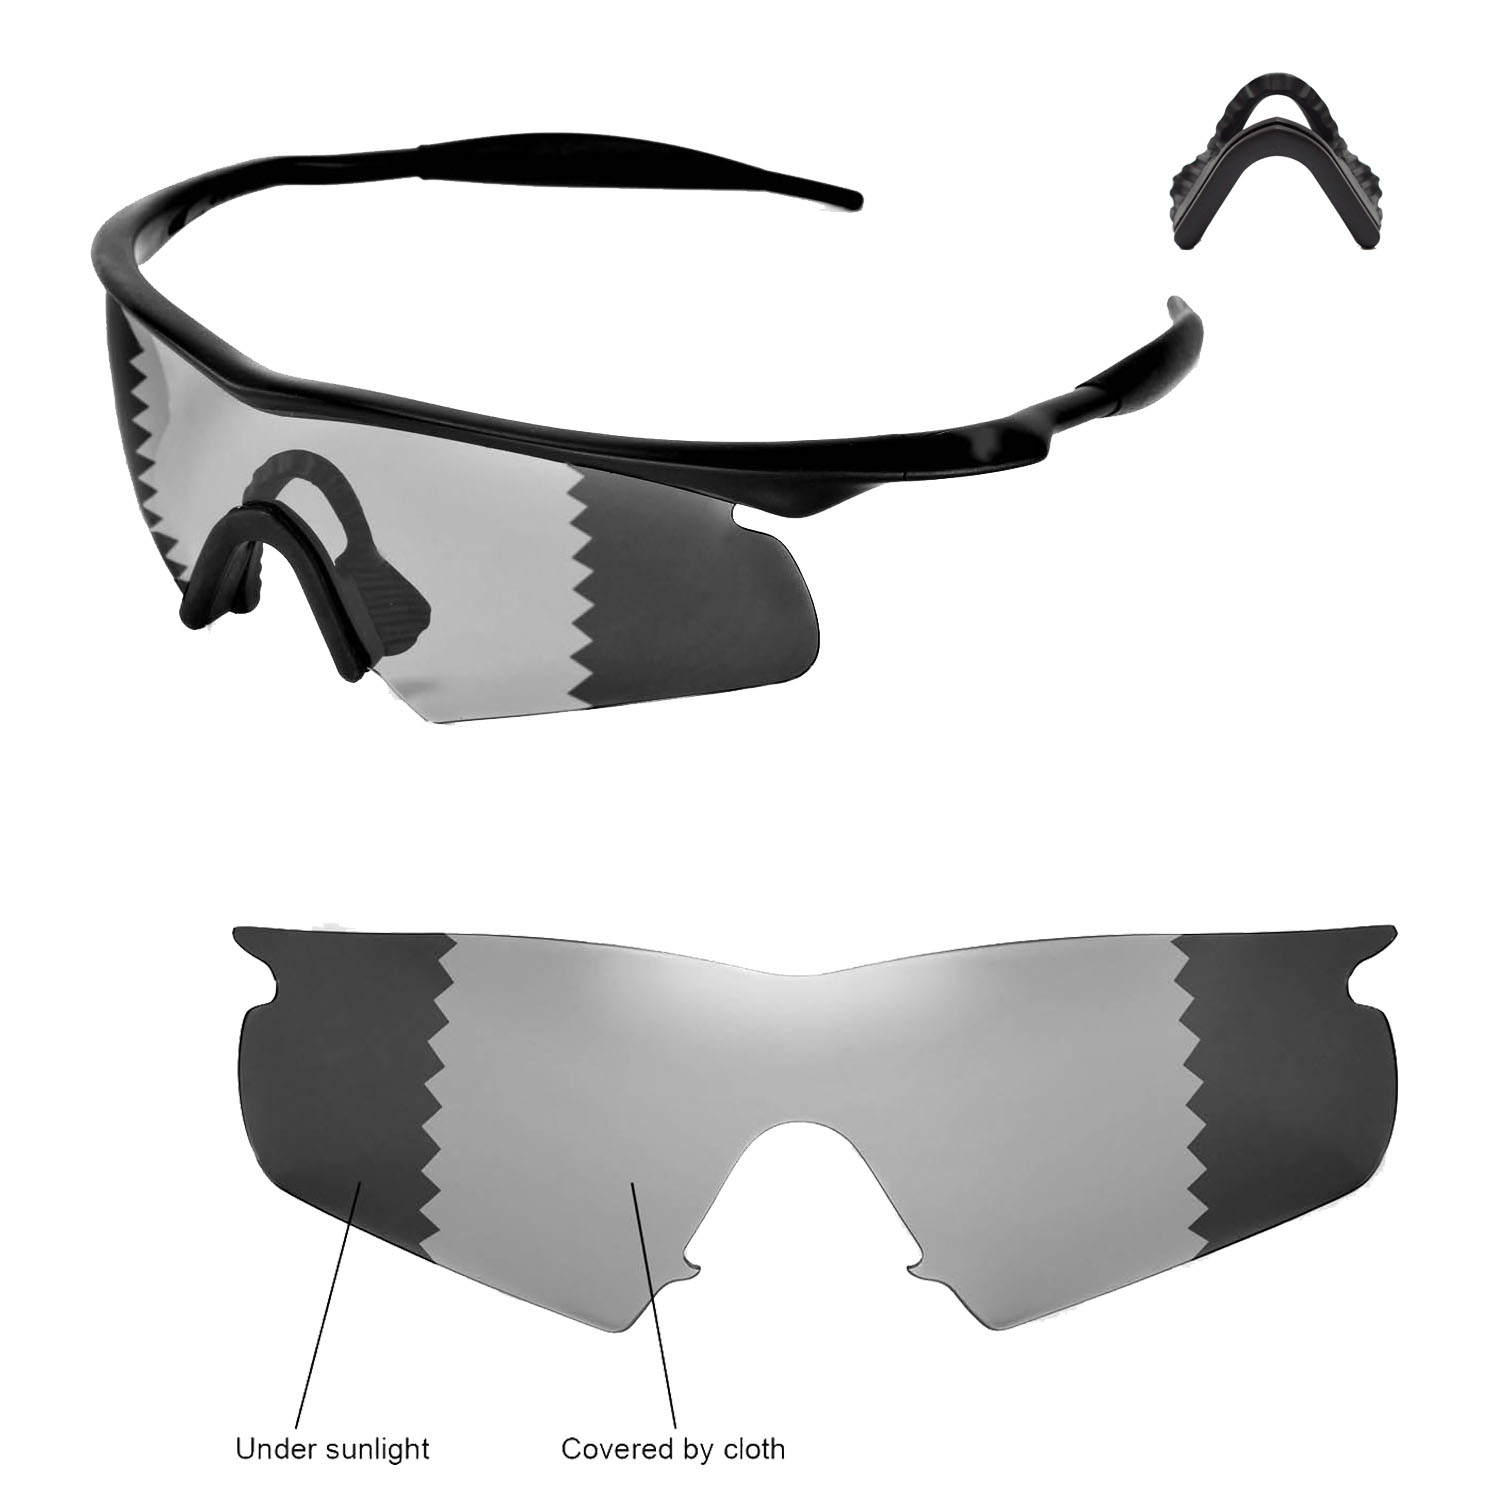 506b5eaa9a8 Details about Walleva Polarized Transition Lenses and Black Nosepads 4  Oakley M Frame Hybrid